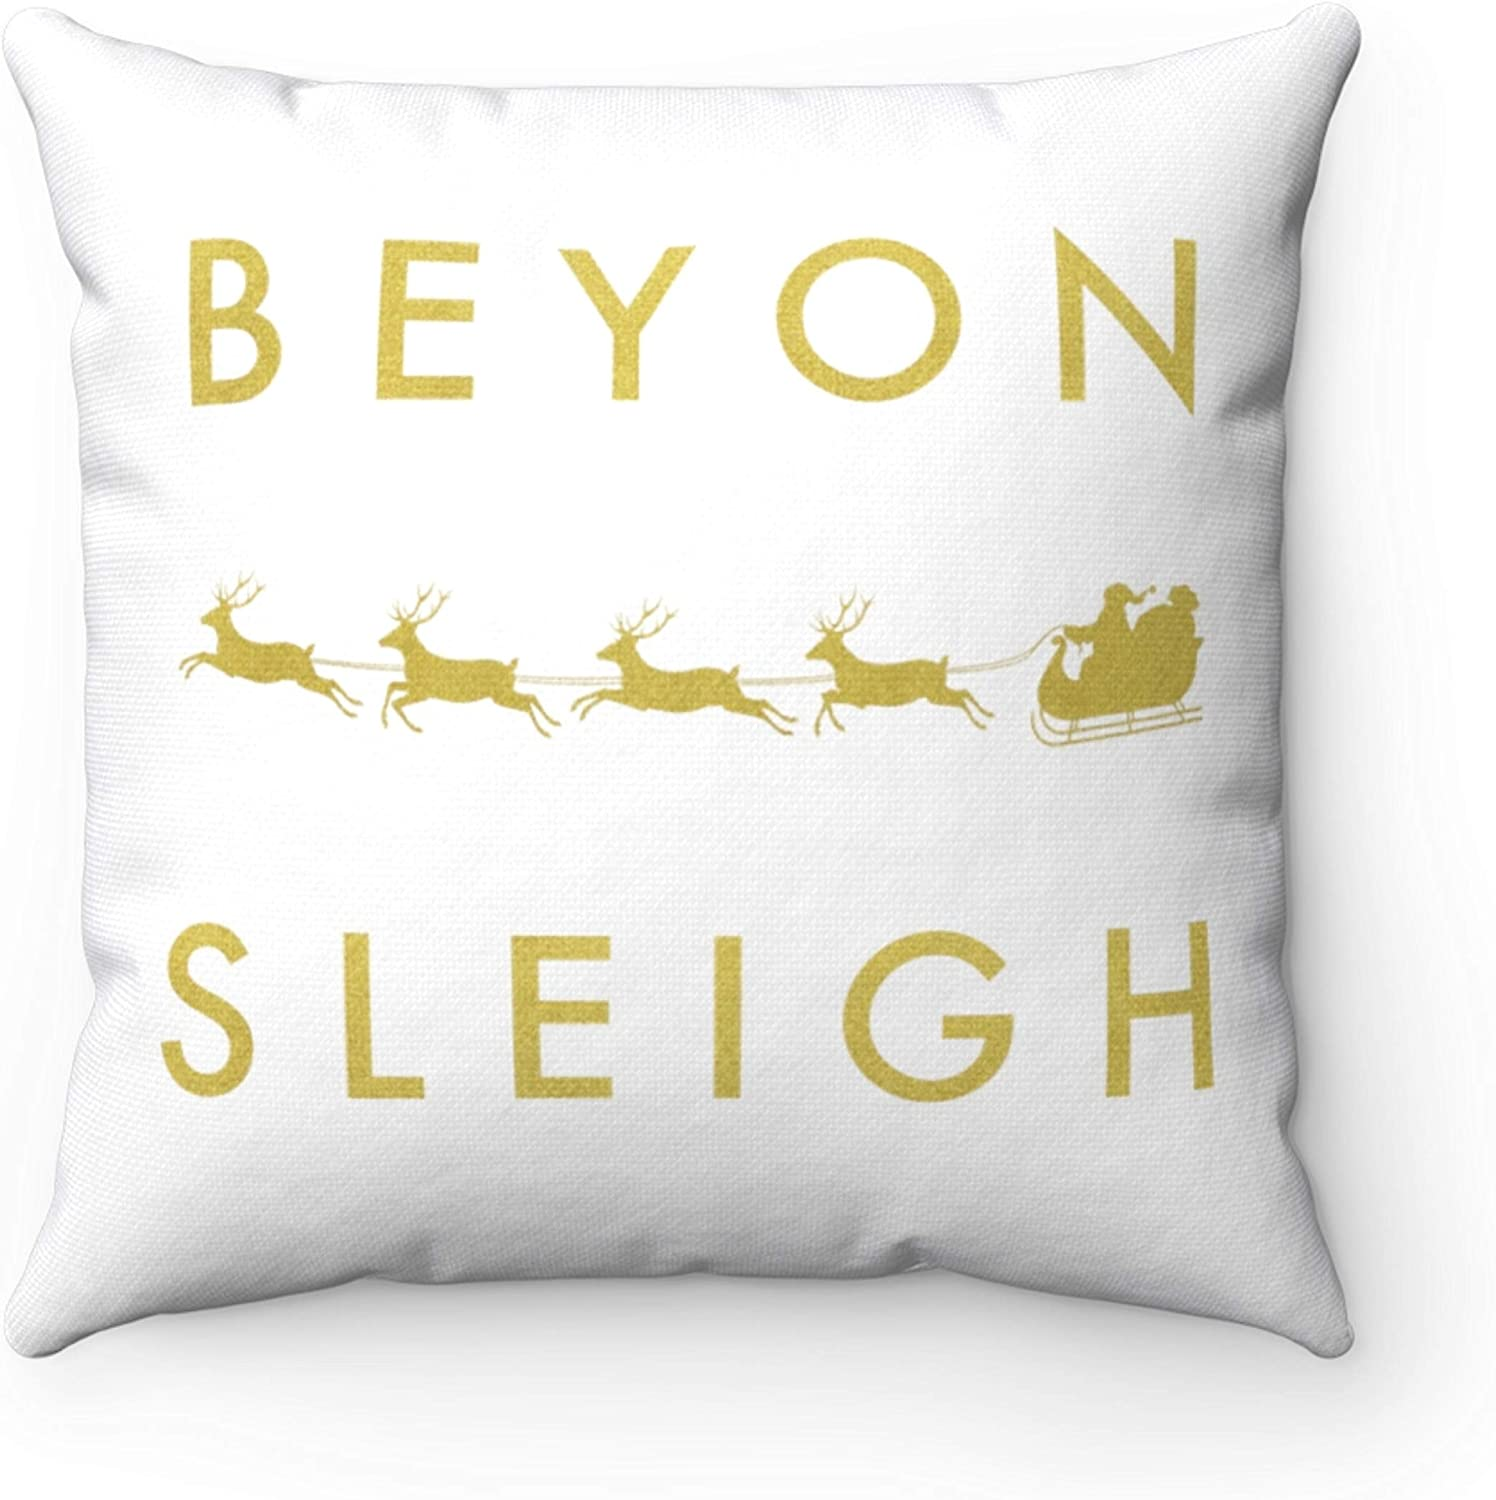 Lplpol Throw Pillow Cover Beyon Sleigh Pillow Cover Beyhive Beyonce Christmas Pillow Gold Print Concealed Zipper Christmas Room Decor Christmas Throw Pillow 22 Inch Christmas Decorations